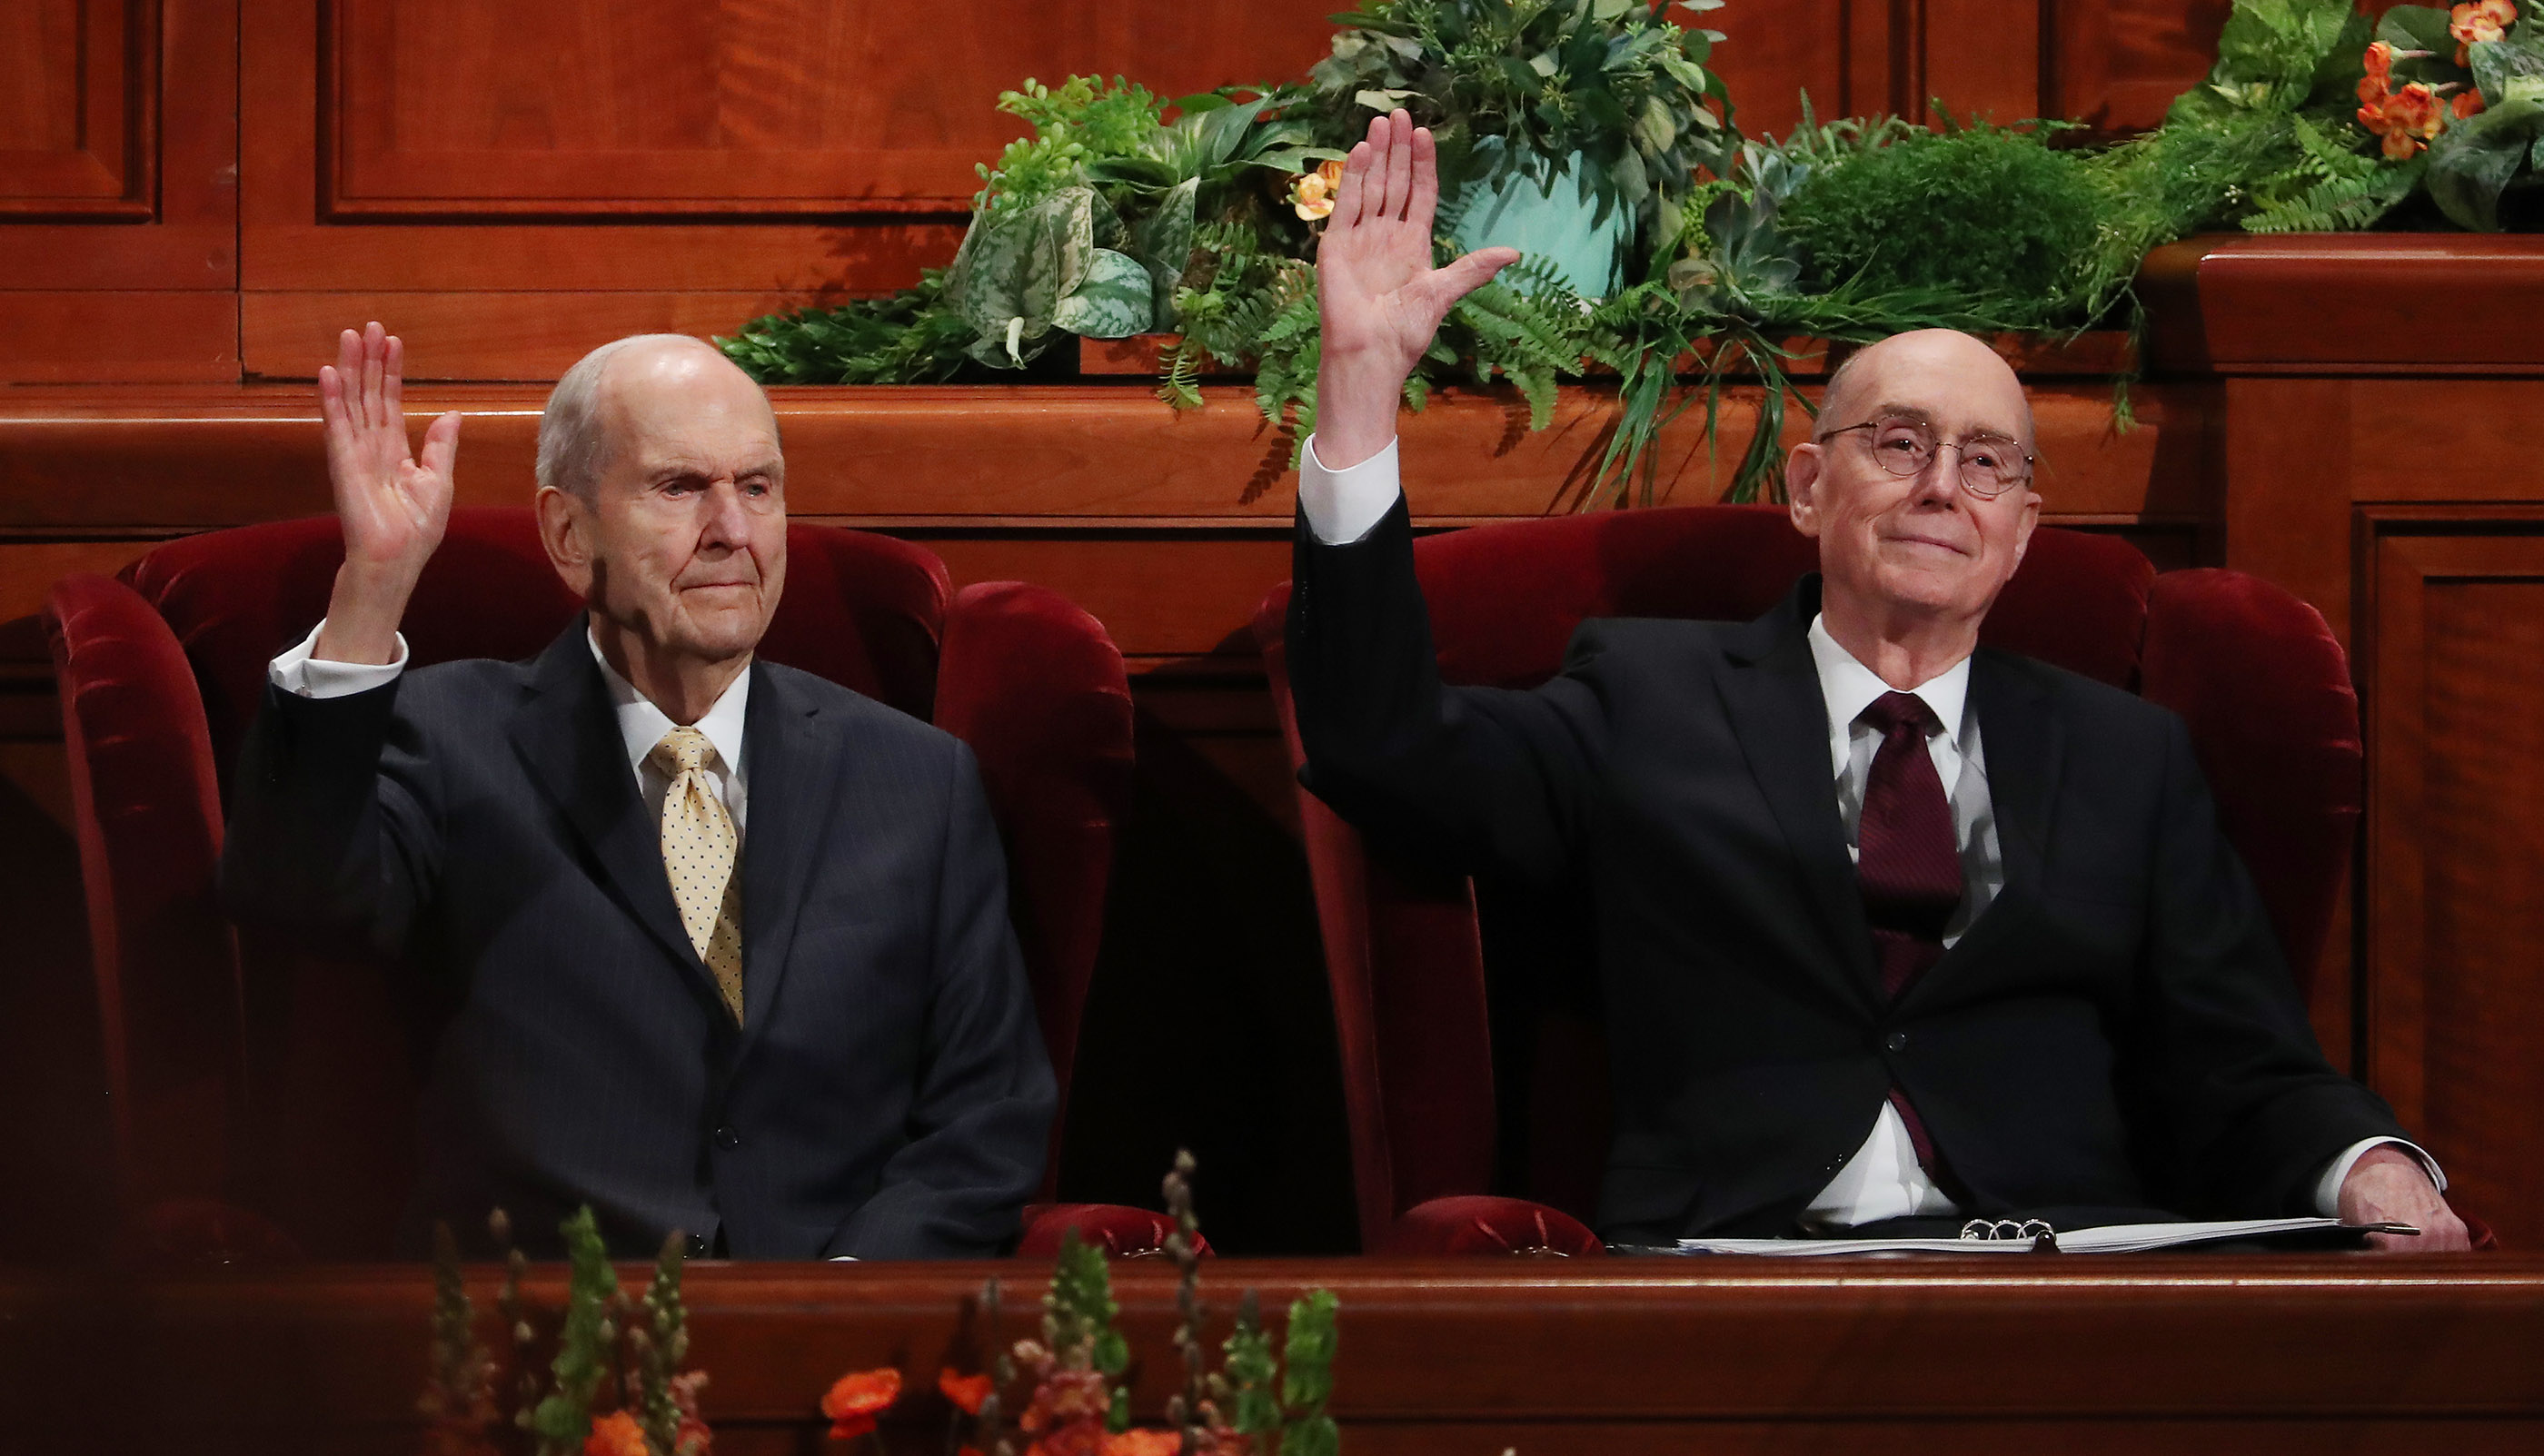 President Russell M. Nelson of The Church of Jesus Christ of Latter-day Saints, left, and President Henry B. Eyring, second counselor in the First Presidency, sustain leaders during the Saturday afternoon session of the 189th Annual General Conference of The Church of Jesus Christ of Latter-day Saints at the Conference Center in Salt Lake City on Saturday, April 6, 2019.